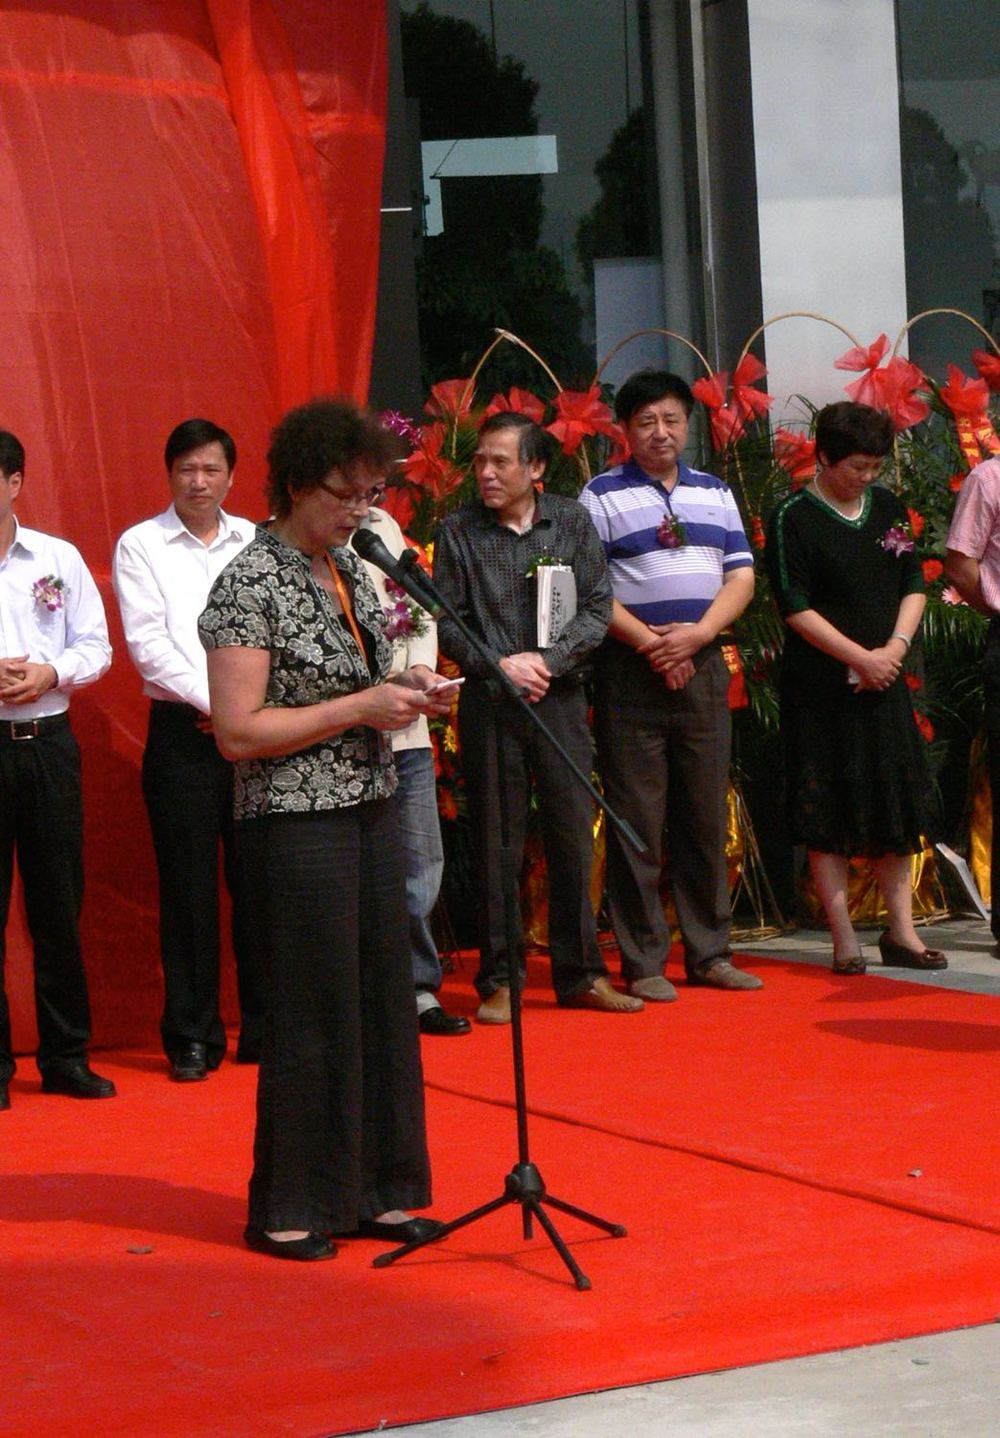 2012 -Speech on behalf of the artists at the opening of the new Yixing International Modern Pot Art Museum.